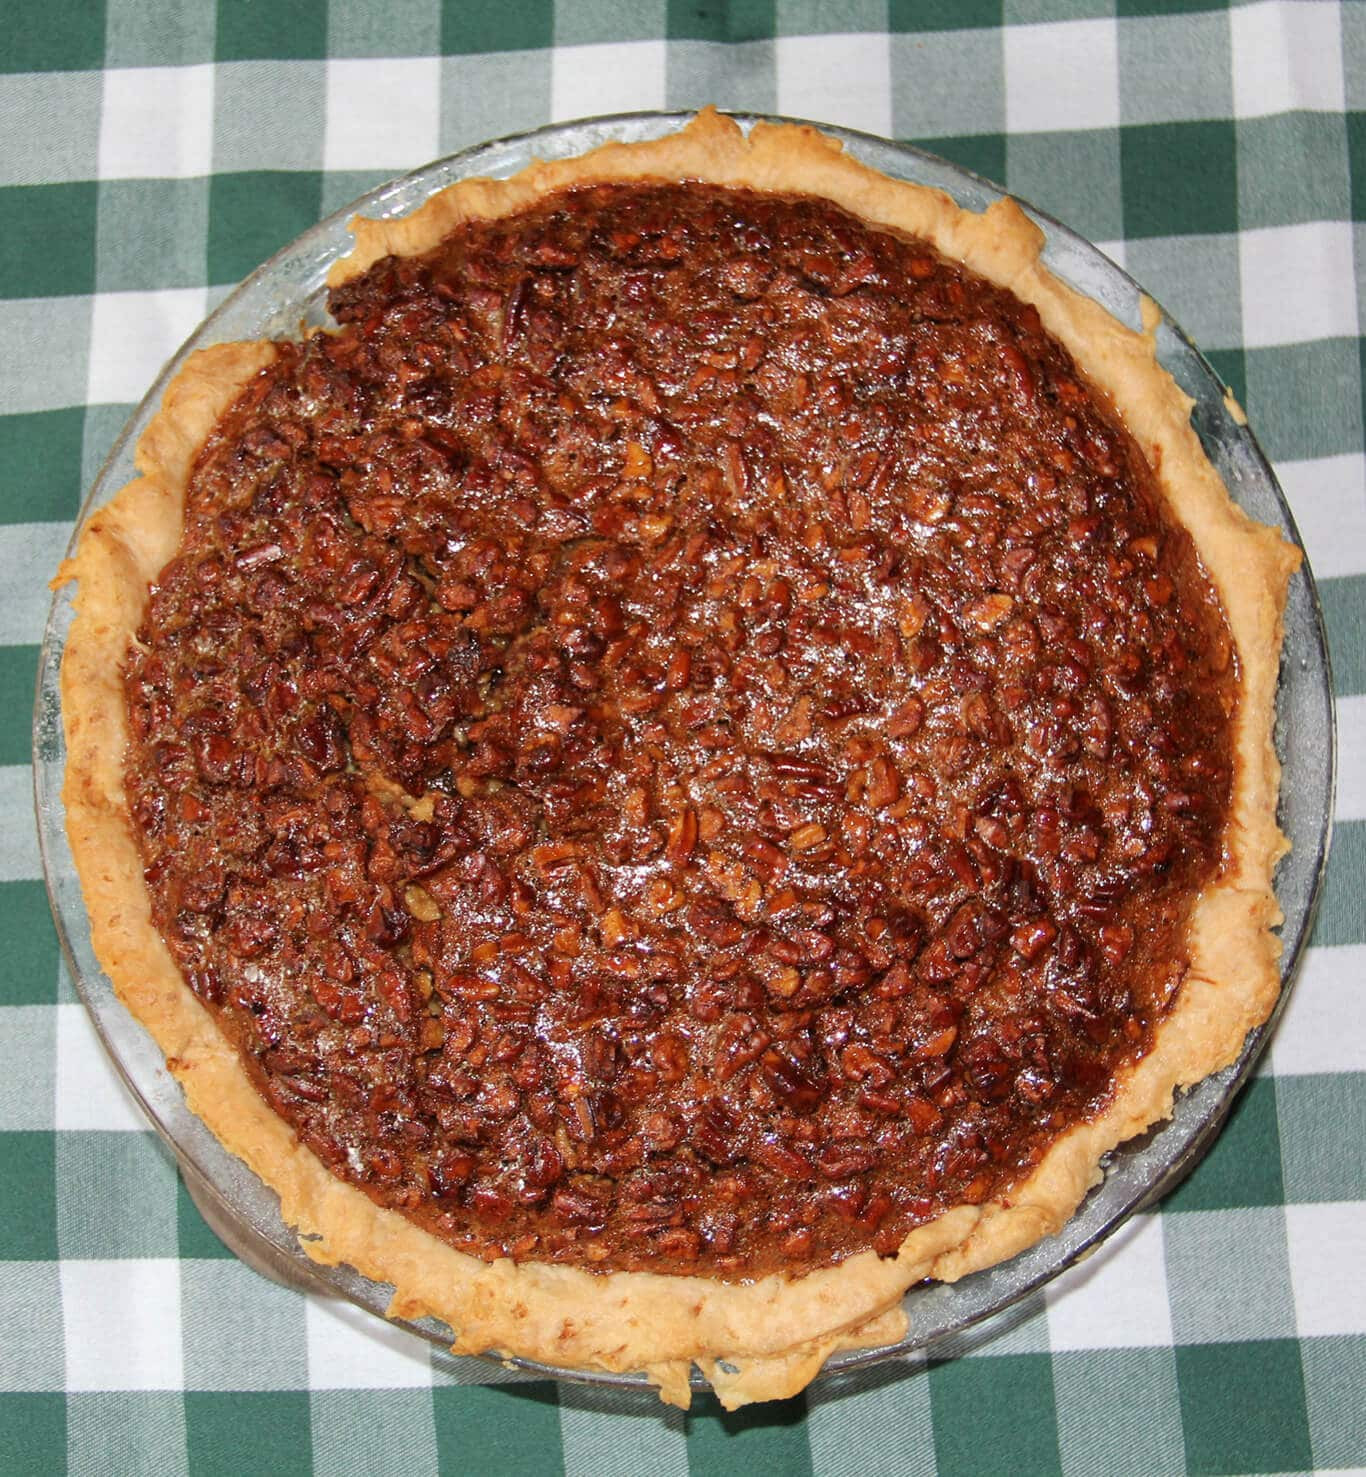 M&Ms Pecan Pie  Southern Pecan Pie made with Real Cane Syrup for Richer Flavor